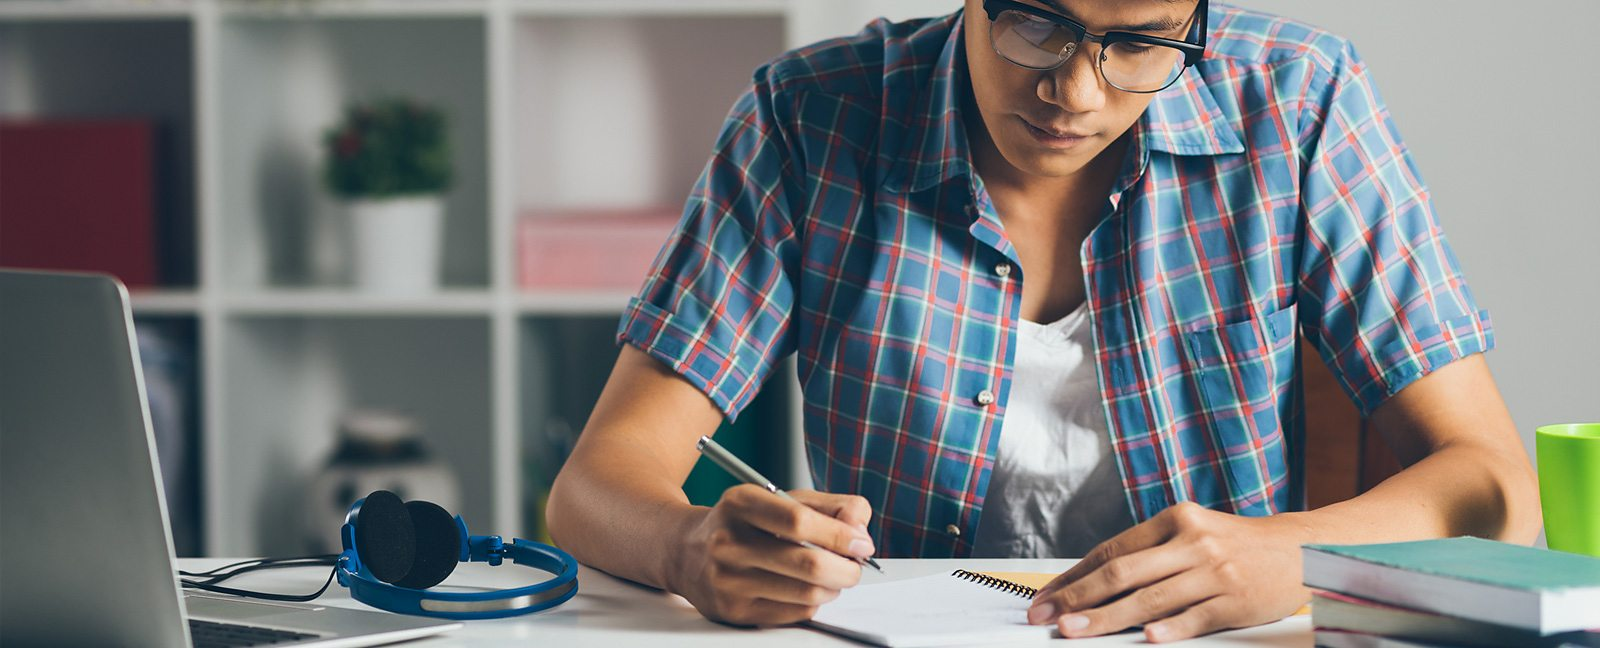 essay structure bbc Essay uk offers professional custom essay writing, dissertation writing and coursework writing service our work is high quality, plagiarism-free and delivered on time essay uk is a trading name of student academic services limited , a company registered in england and wales under company number 08866484.